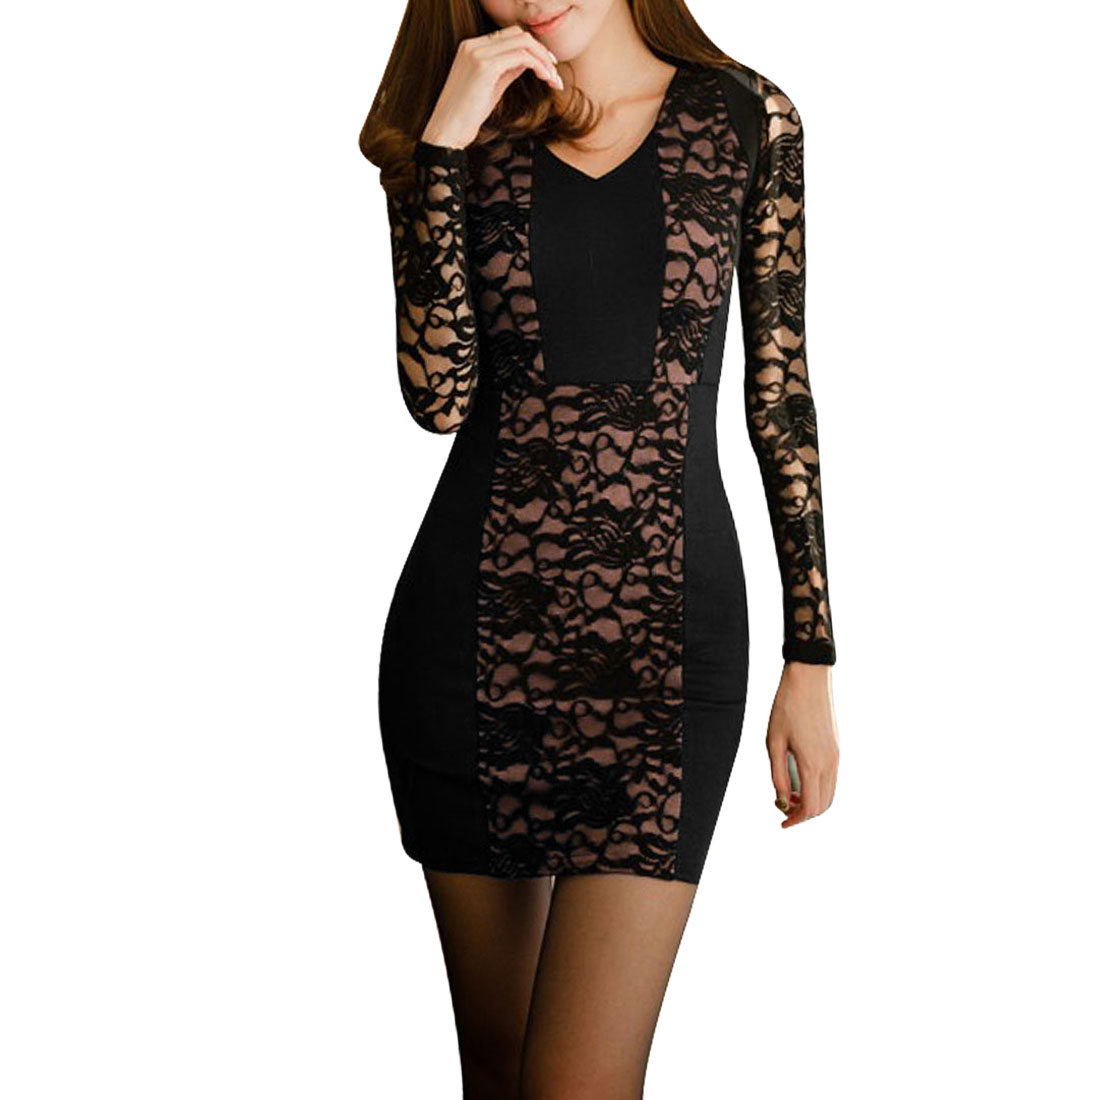 Ladies Black V Neck Color Block Lace Splice Autumn Casual Mini Dress XS